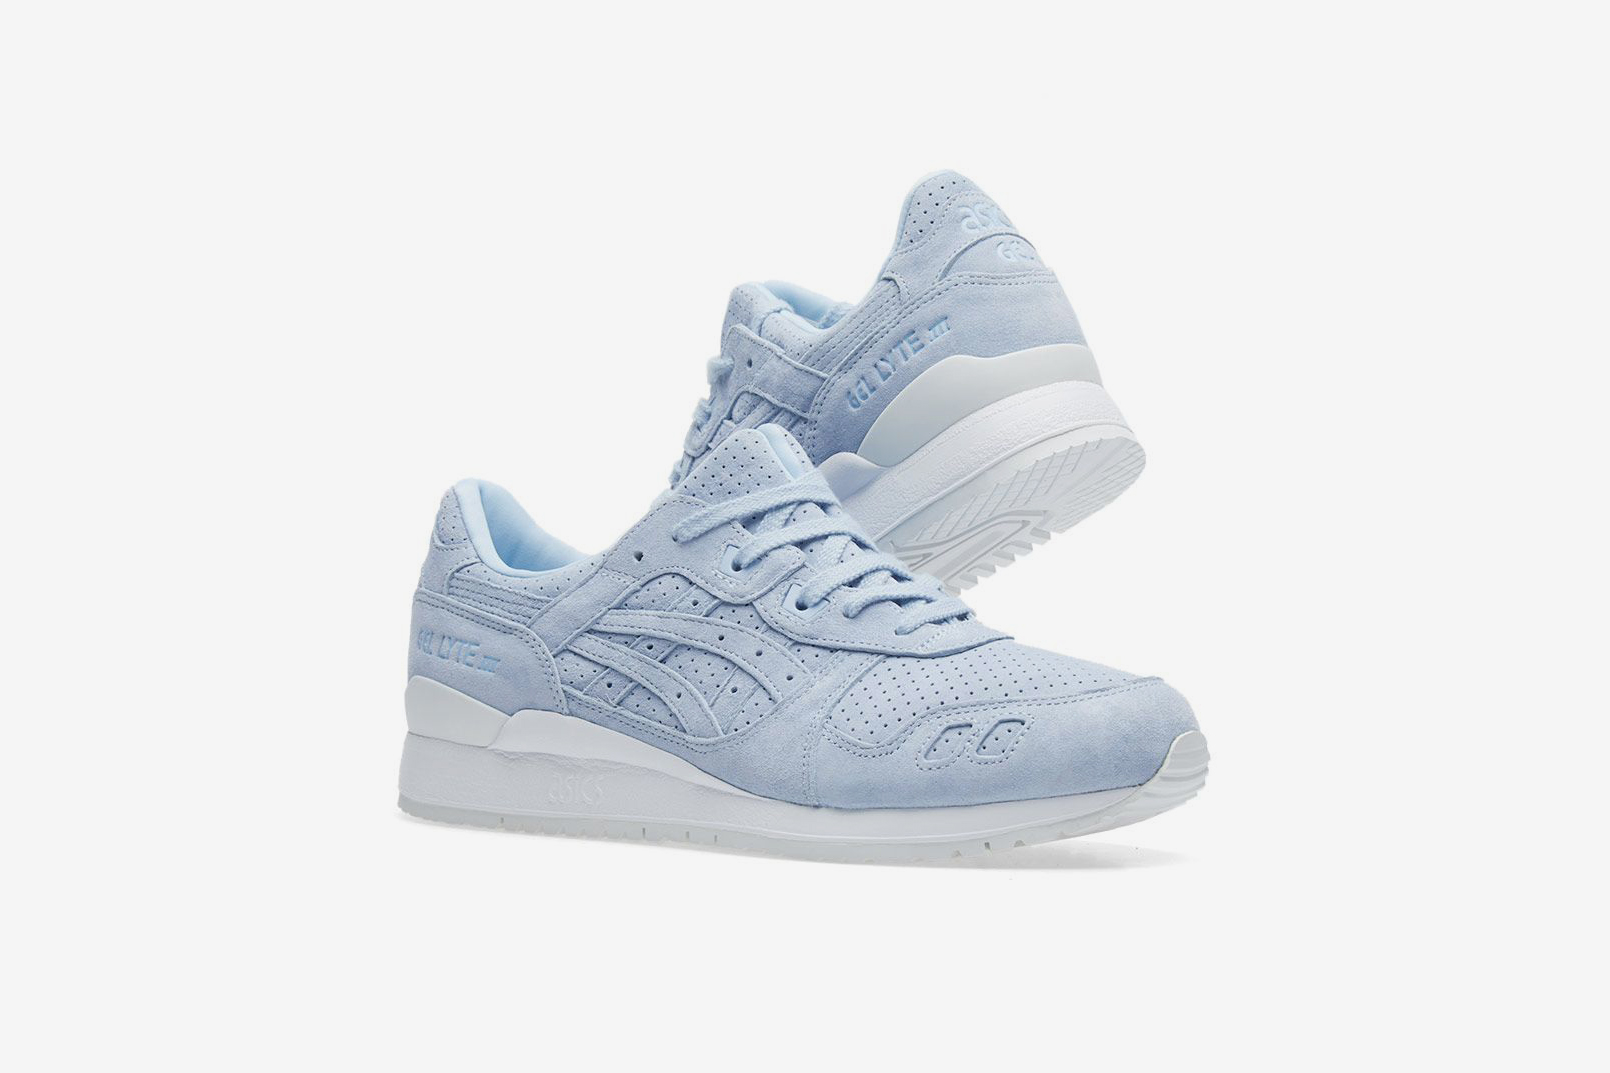 info for 8d73e 5641a The Sneakerness x ASICS GLV